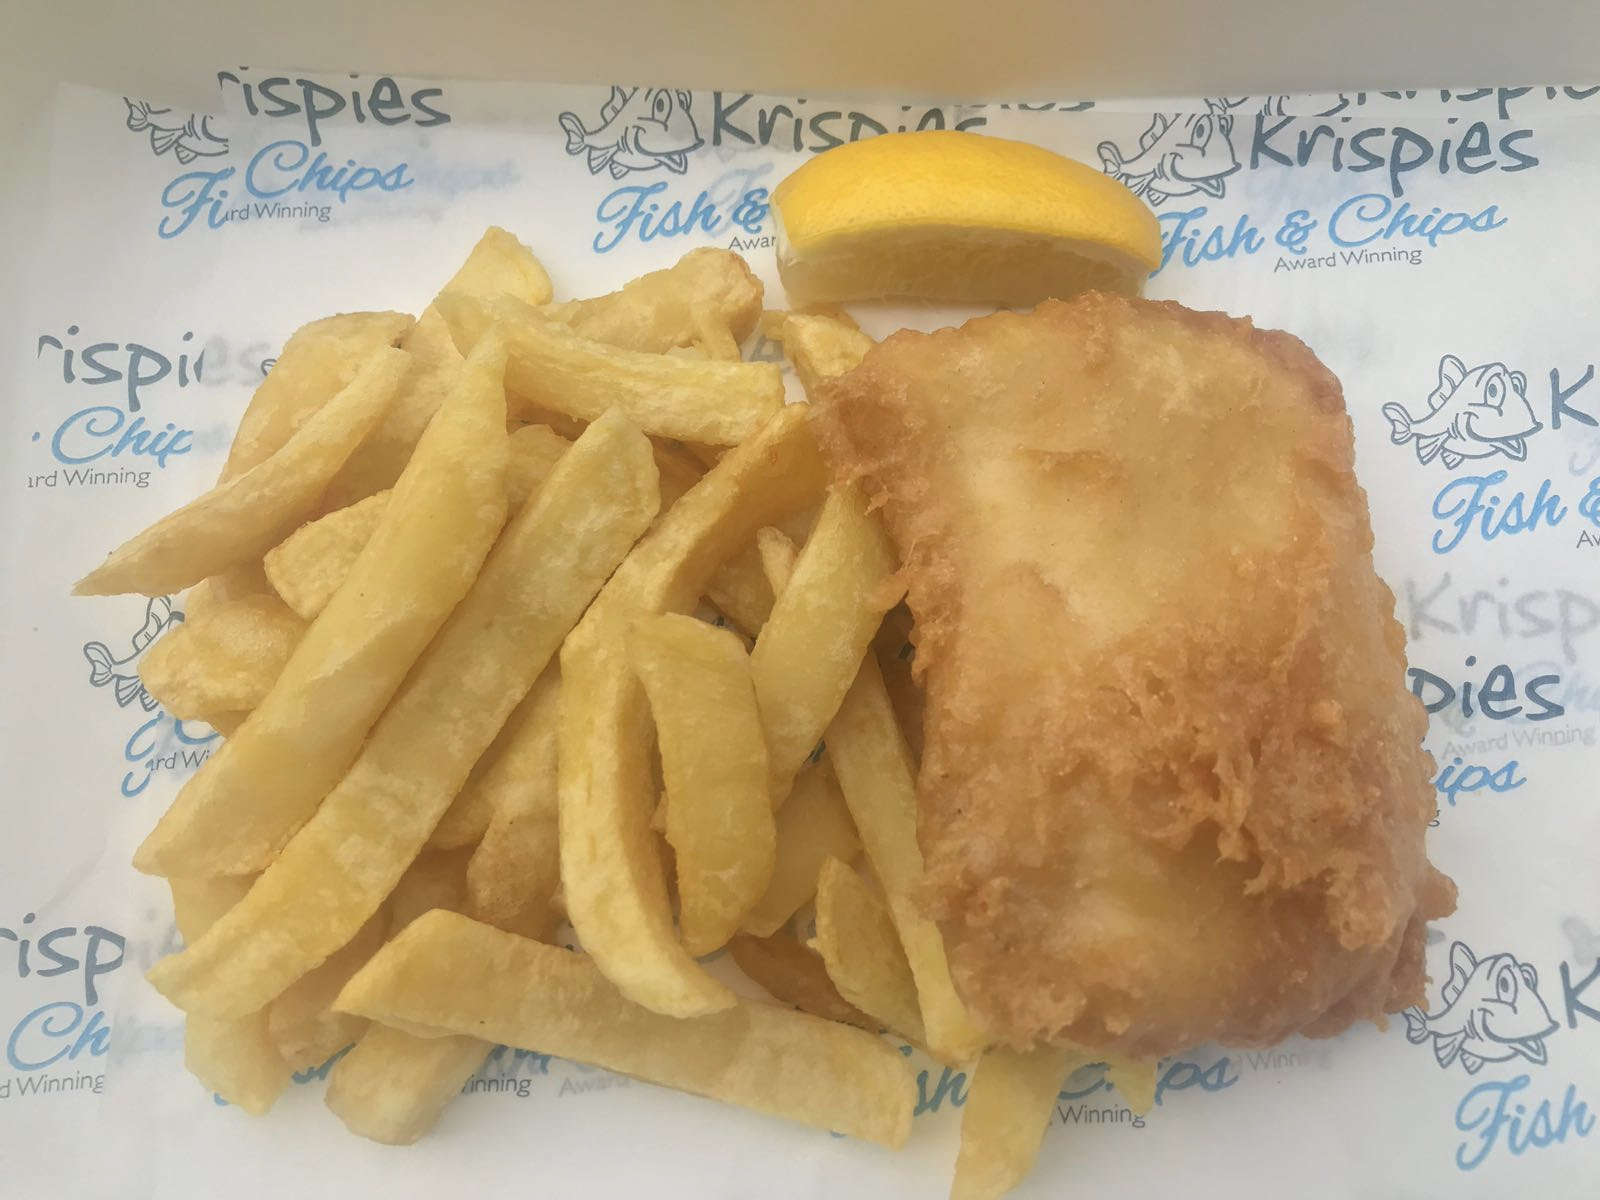 Pick up delicious fresh, local Halibut for only £3.00 for adults and £1.50 for kids on National Fish & Chip Day 1st June 2018